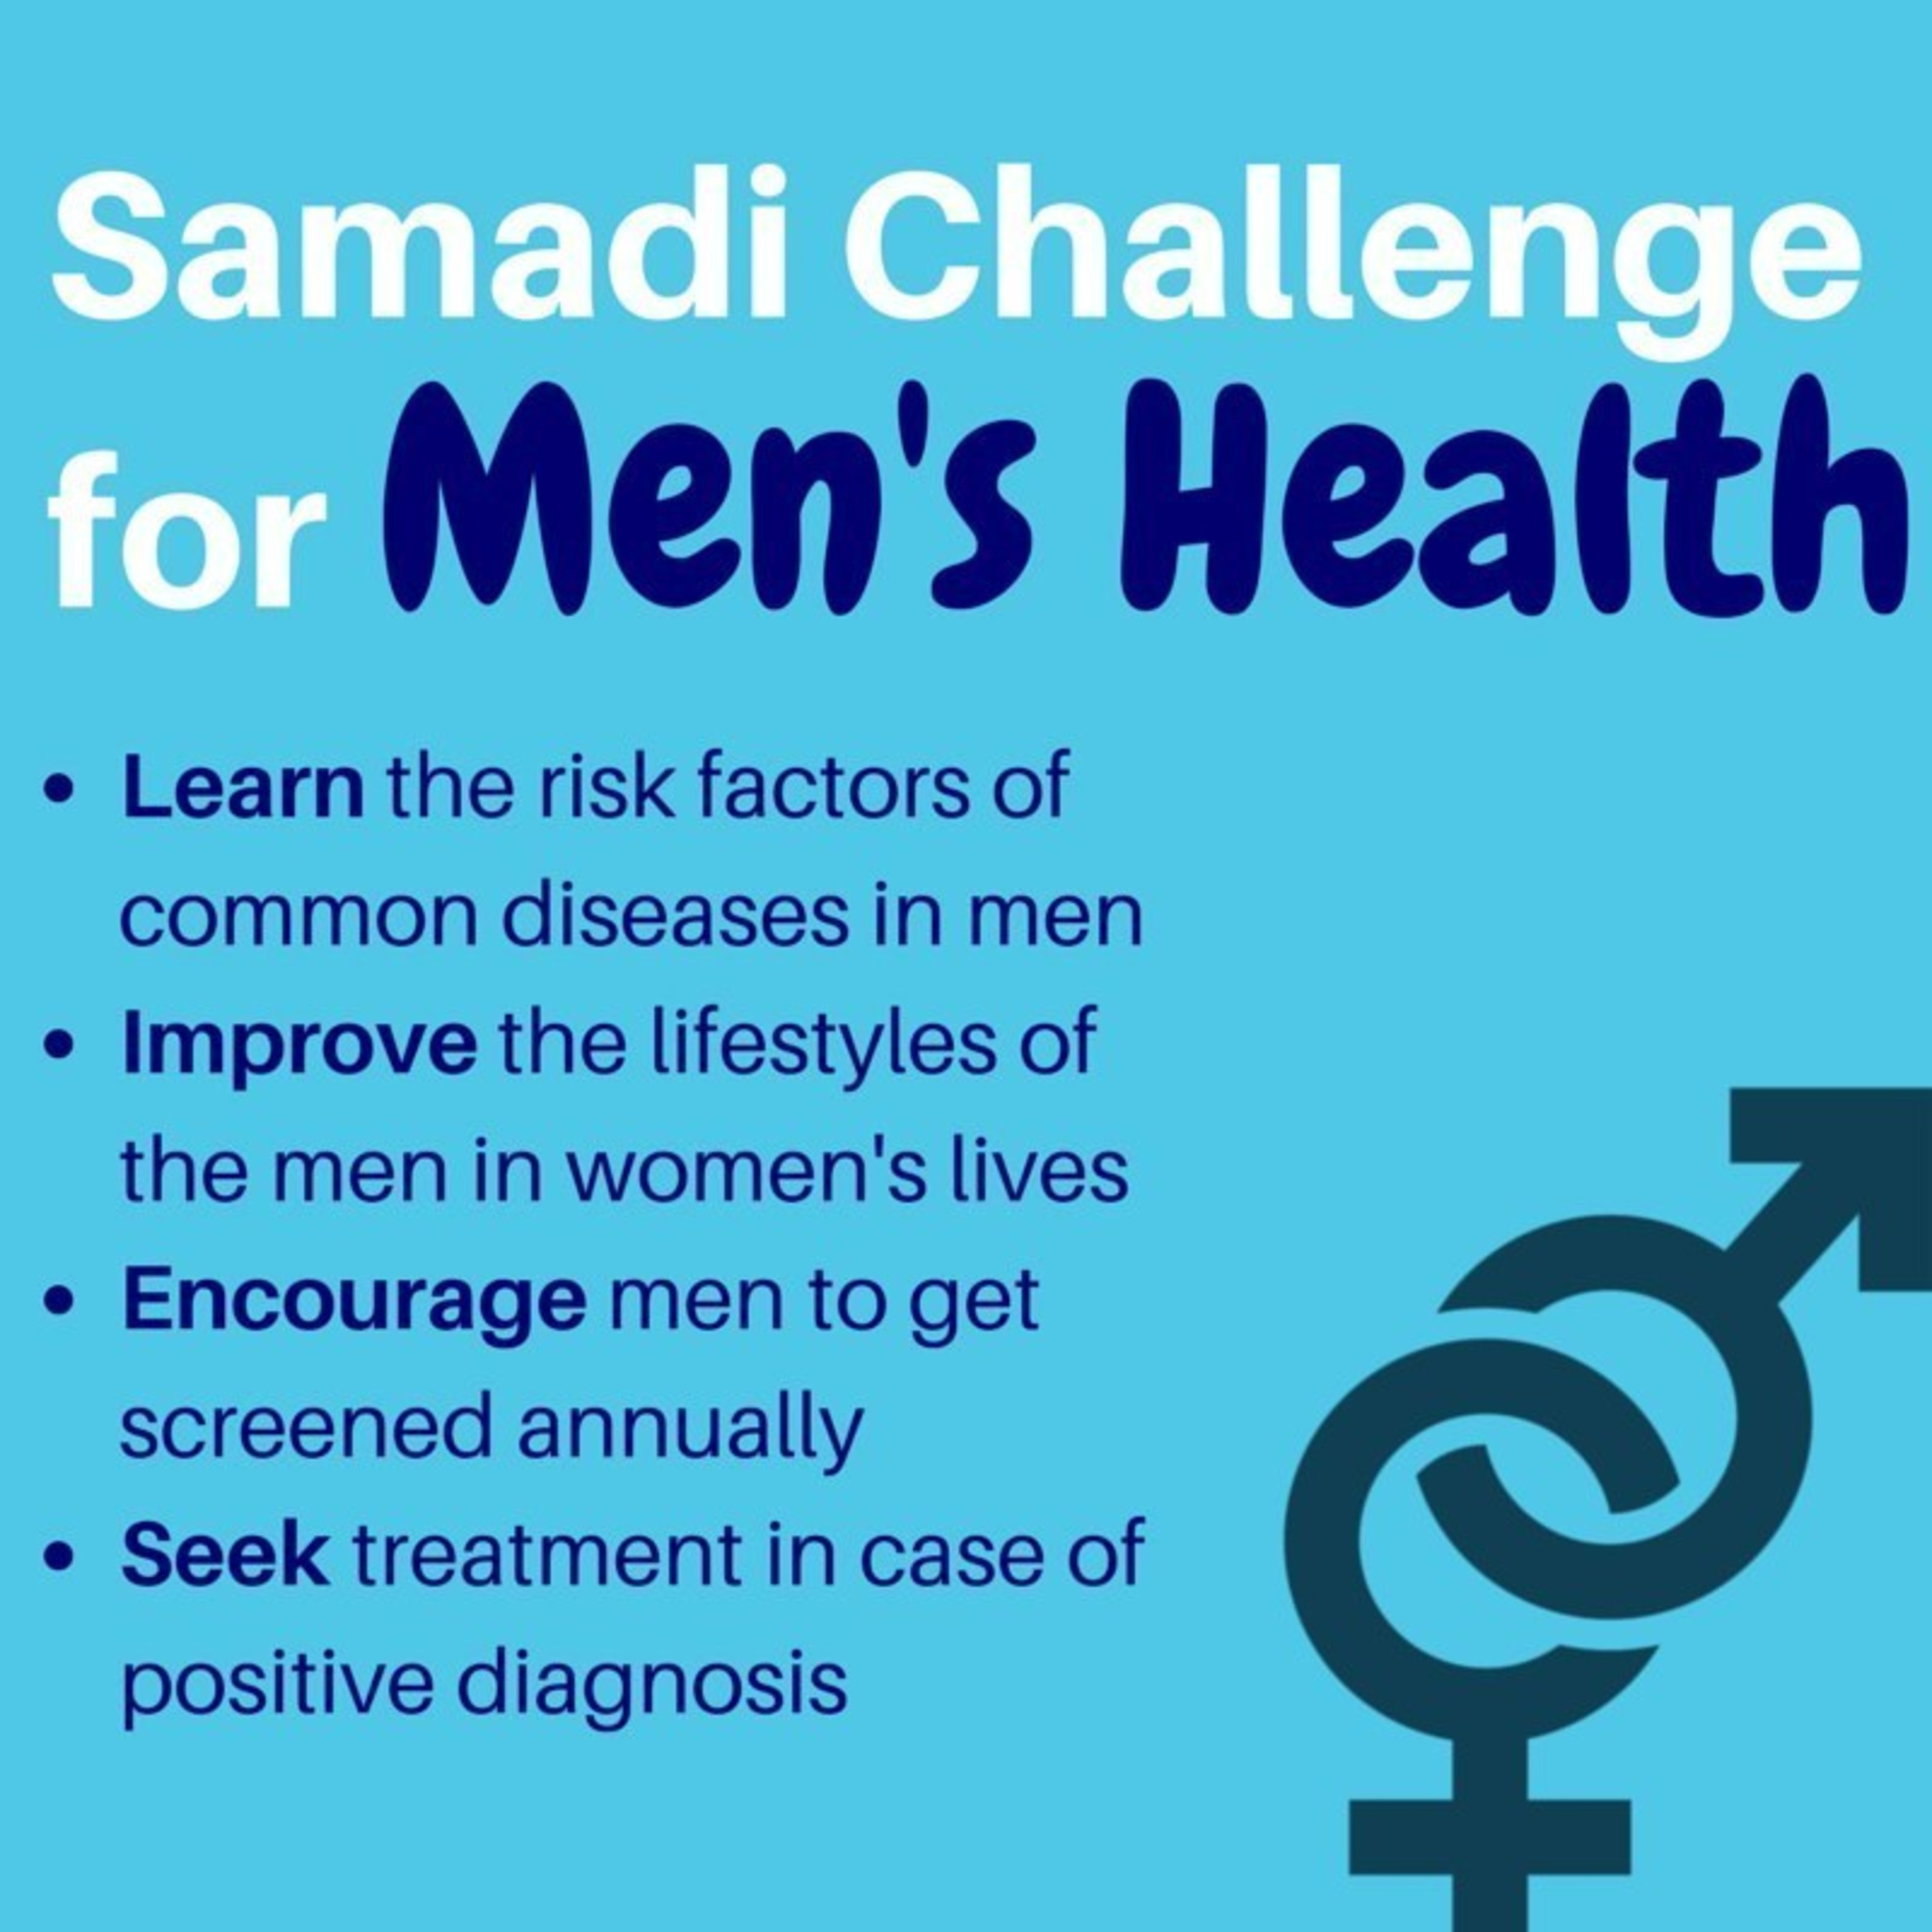 World renowned prostate cancer surgeon and men's health specialist, Dr. David Samadi, calls for women to take the Samadi Challenge during Men's Health Month and creates a screening and prevention guide for men by age.